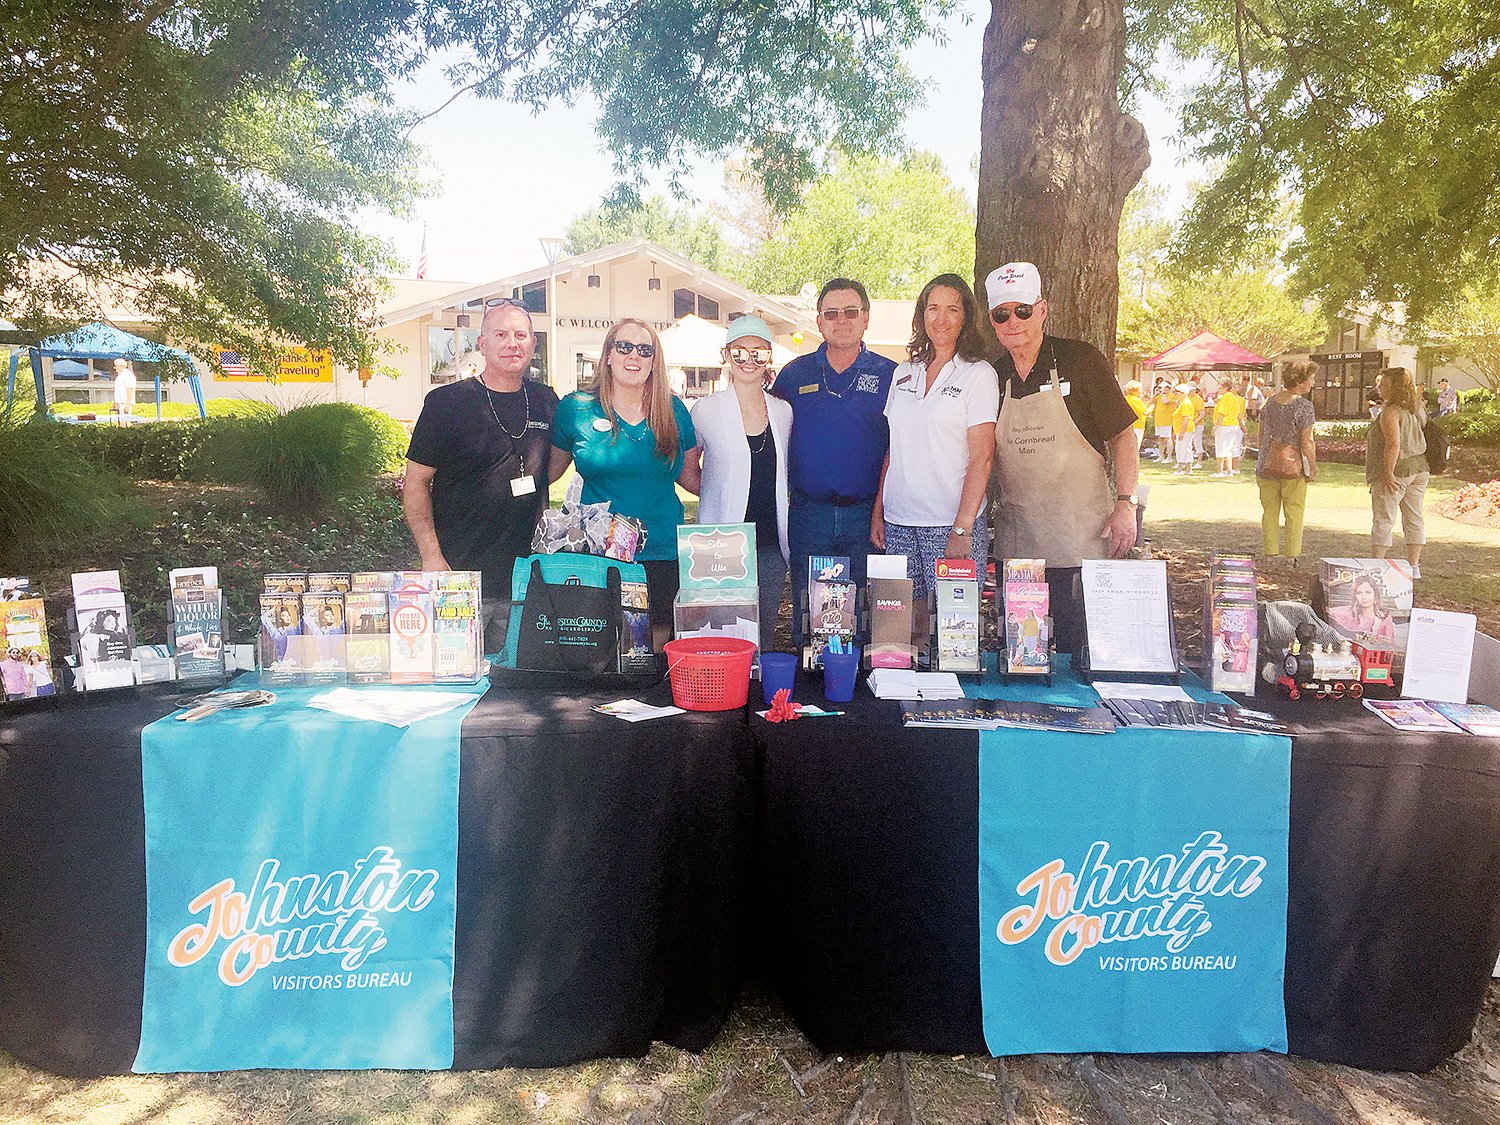 The Johnston County Visitors Bureau and partners visit the North Carolina welcome centers often, including during National Travel & Tourism Week, pictured here during the 2018 celebration.